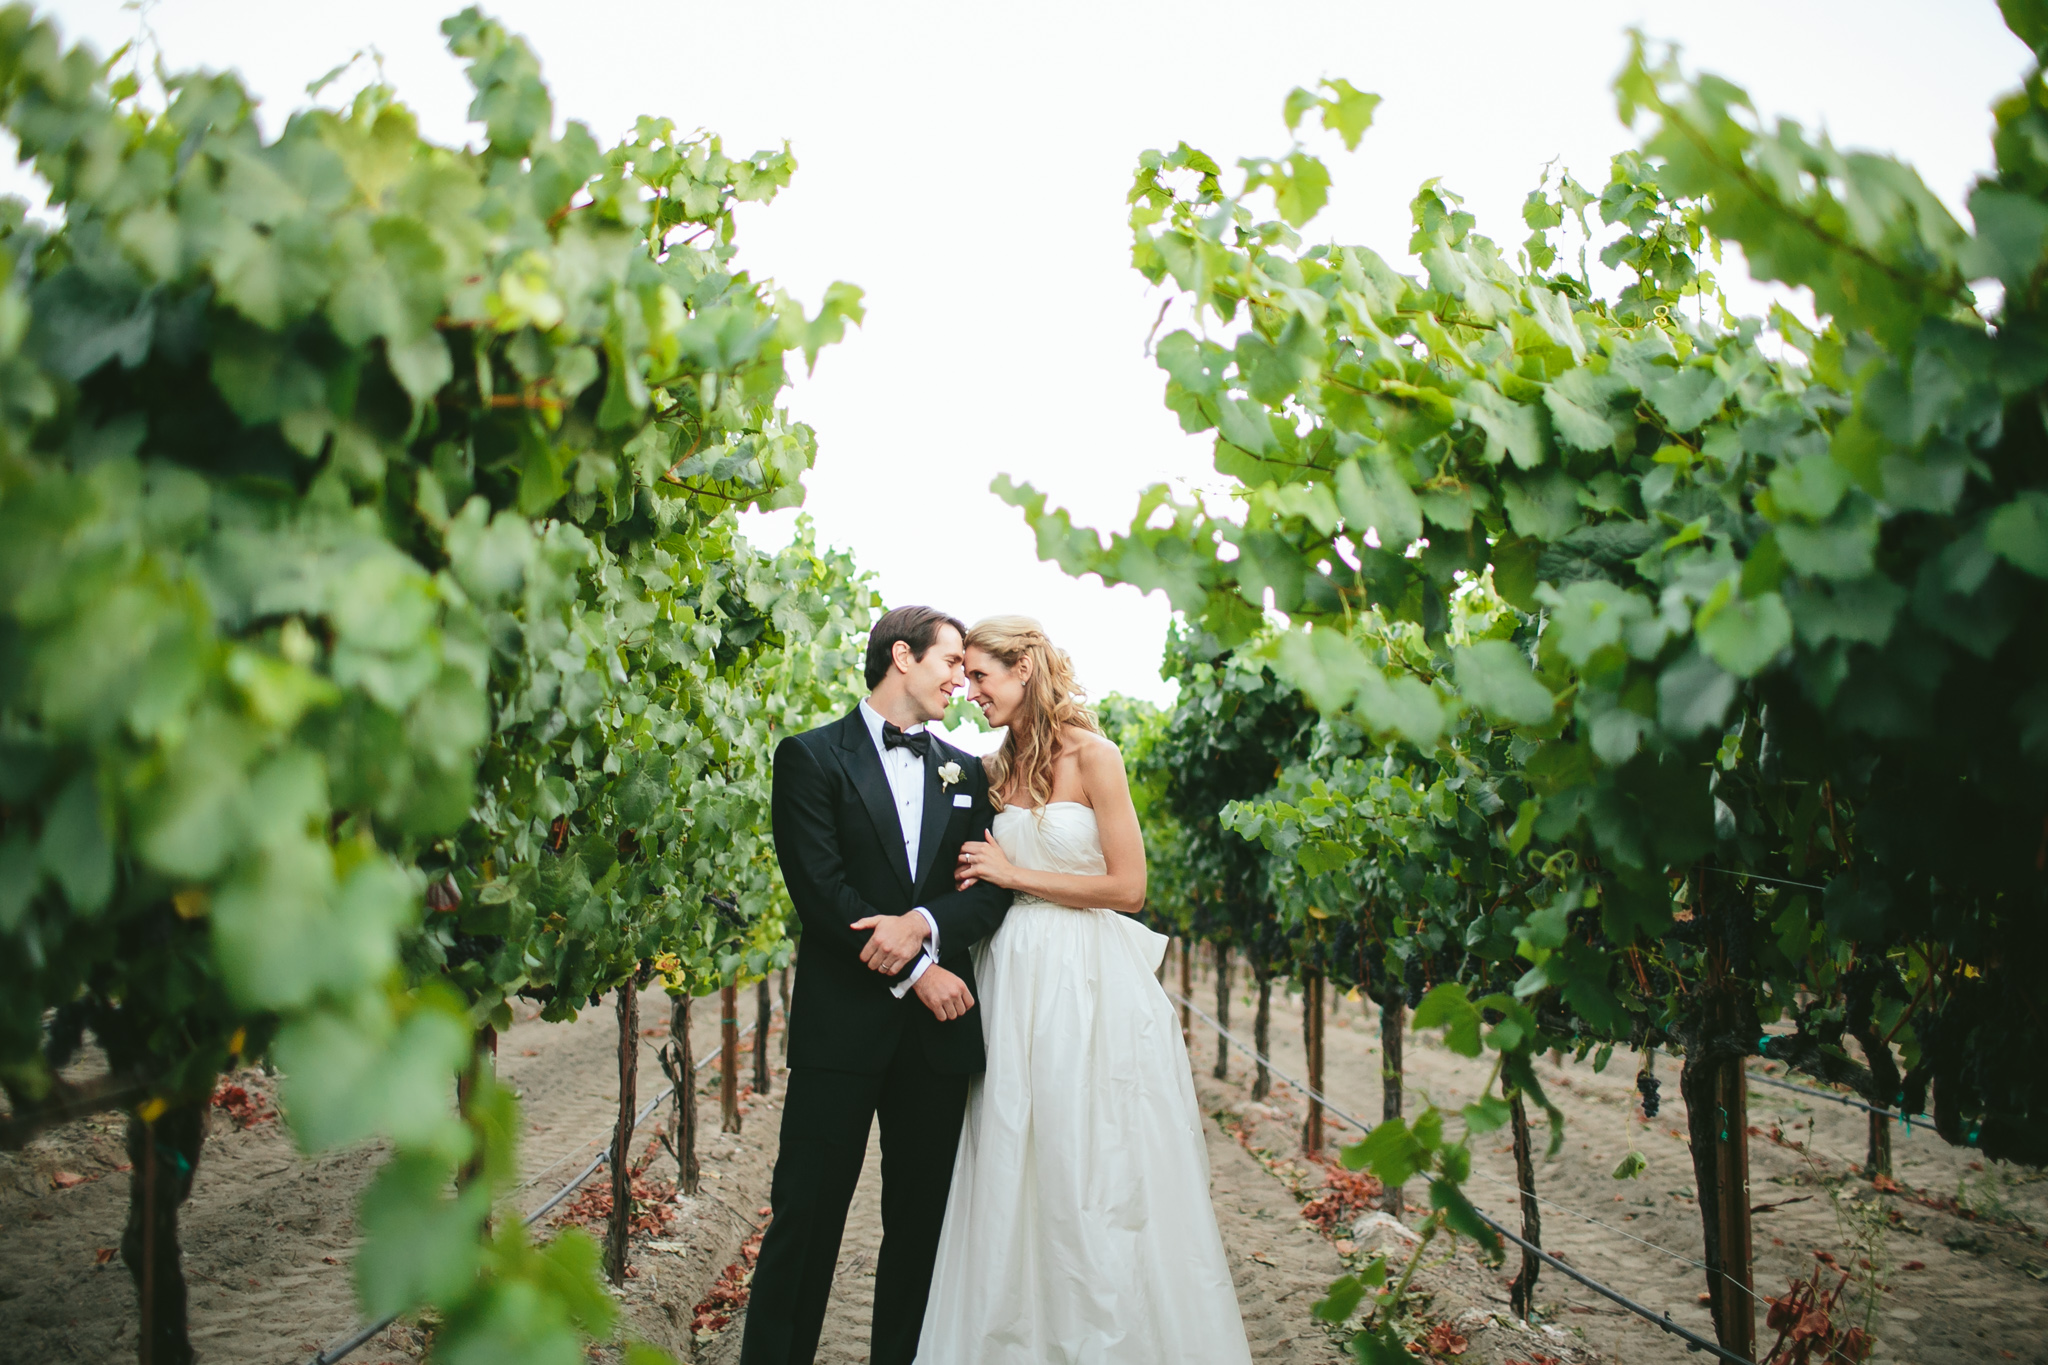 Emily+Nick-WED_BLOG-186